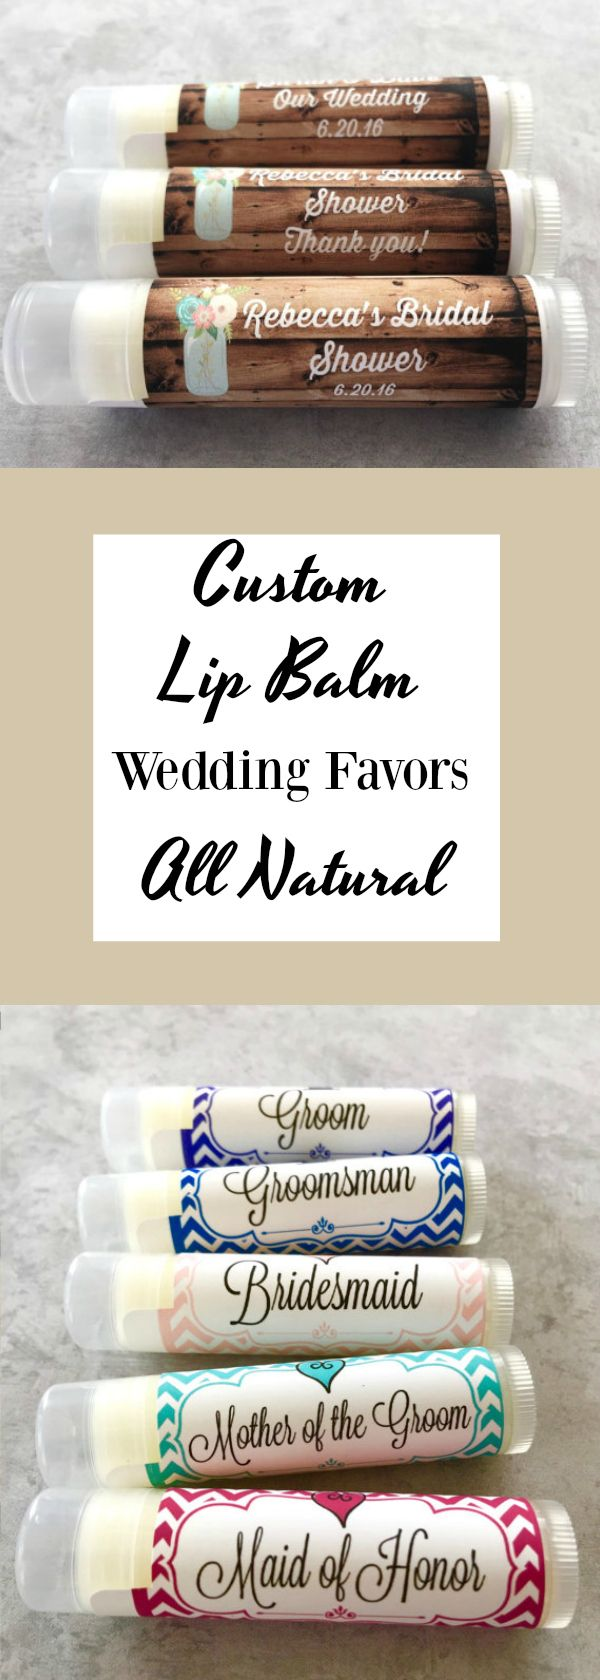 Fancy Personalized Lip Balm Wedding Favors Ornament - The Wedding ...